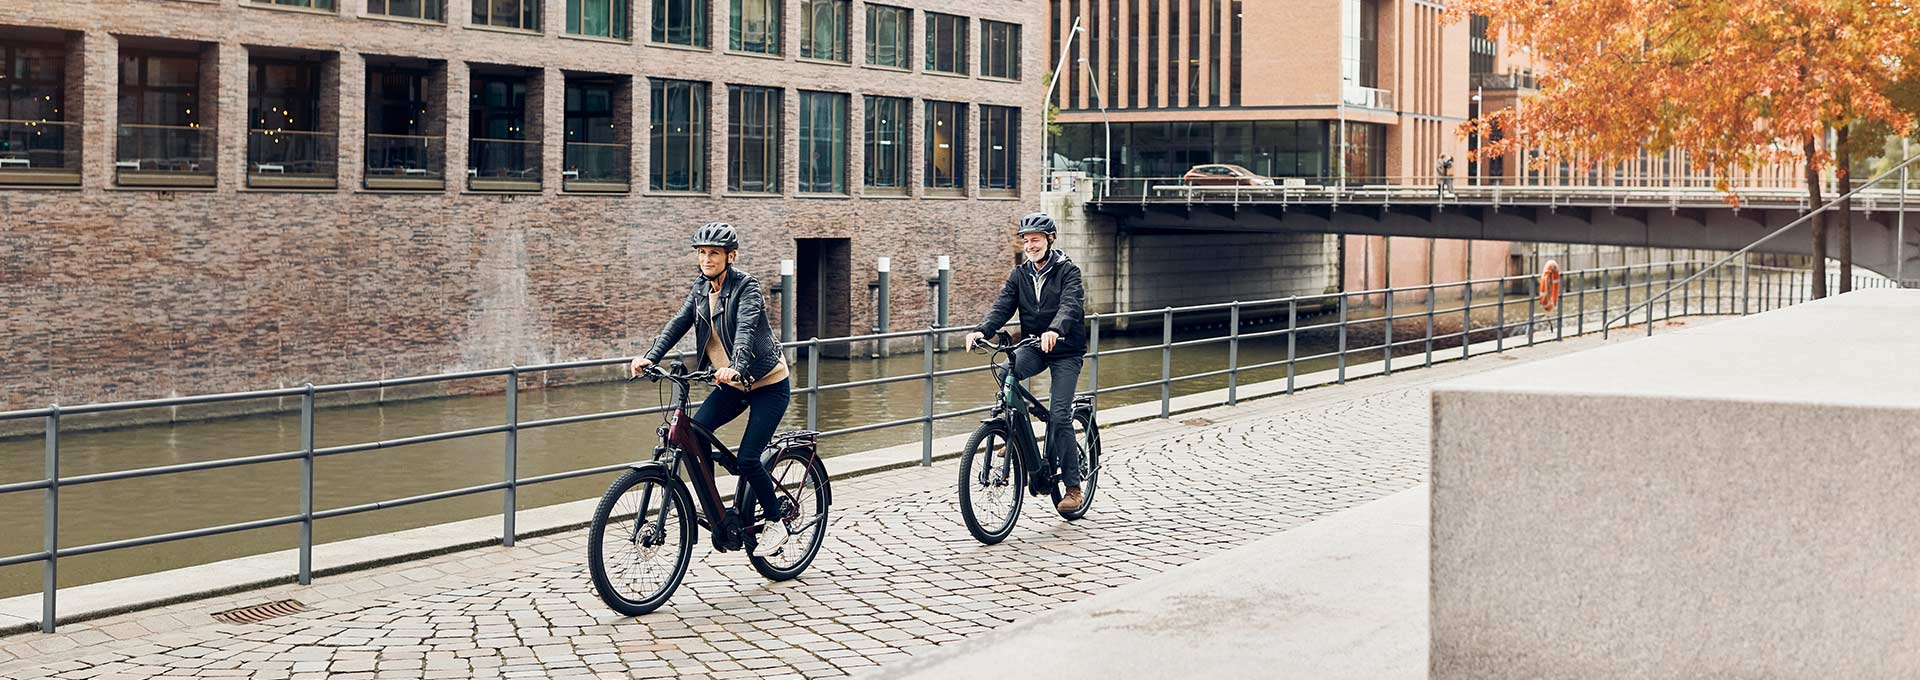 E-Bike Tour – e.bike manufaktur